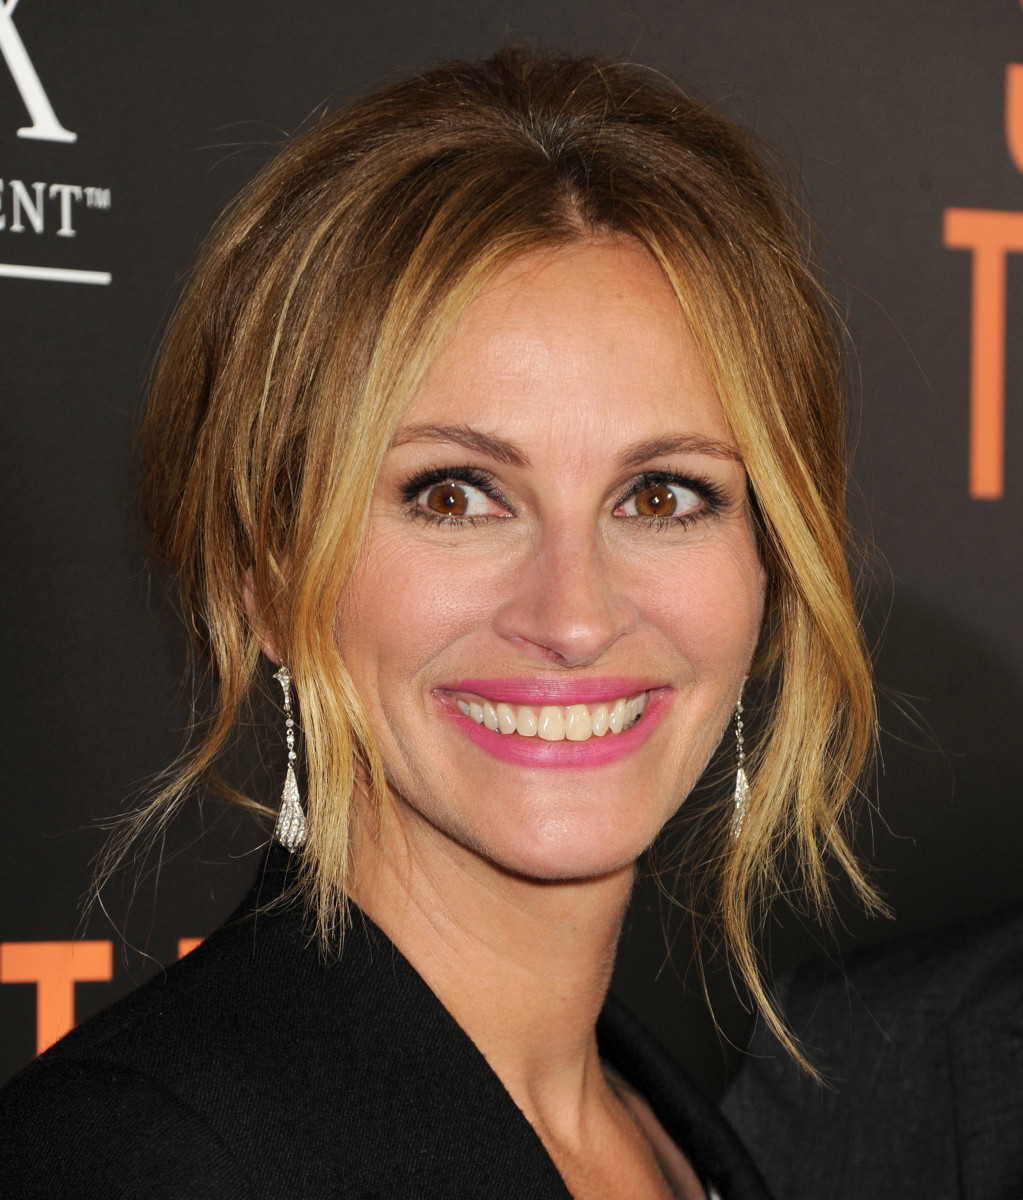 Julia Roberts, Secret in Their Eyes premiere, 2015